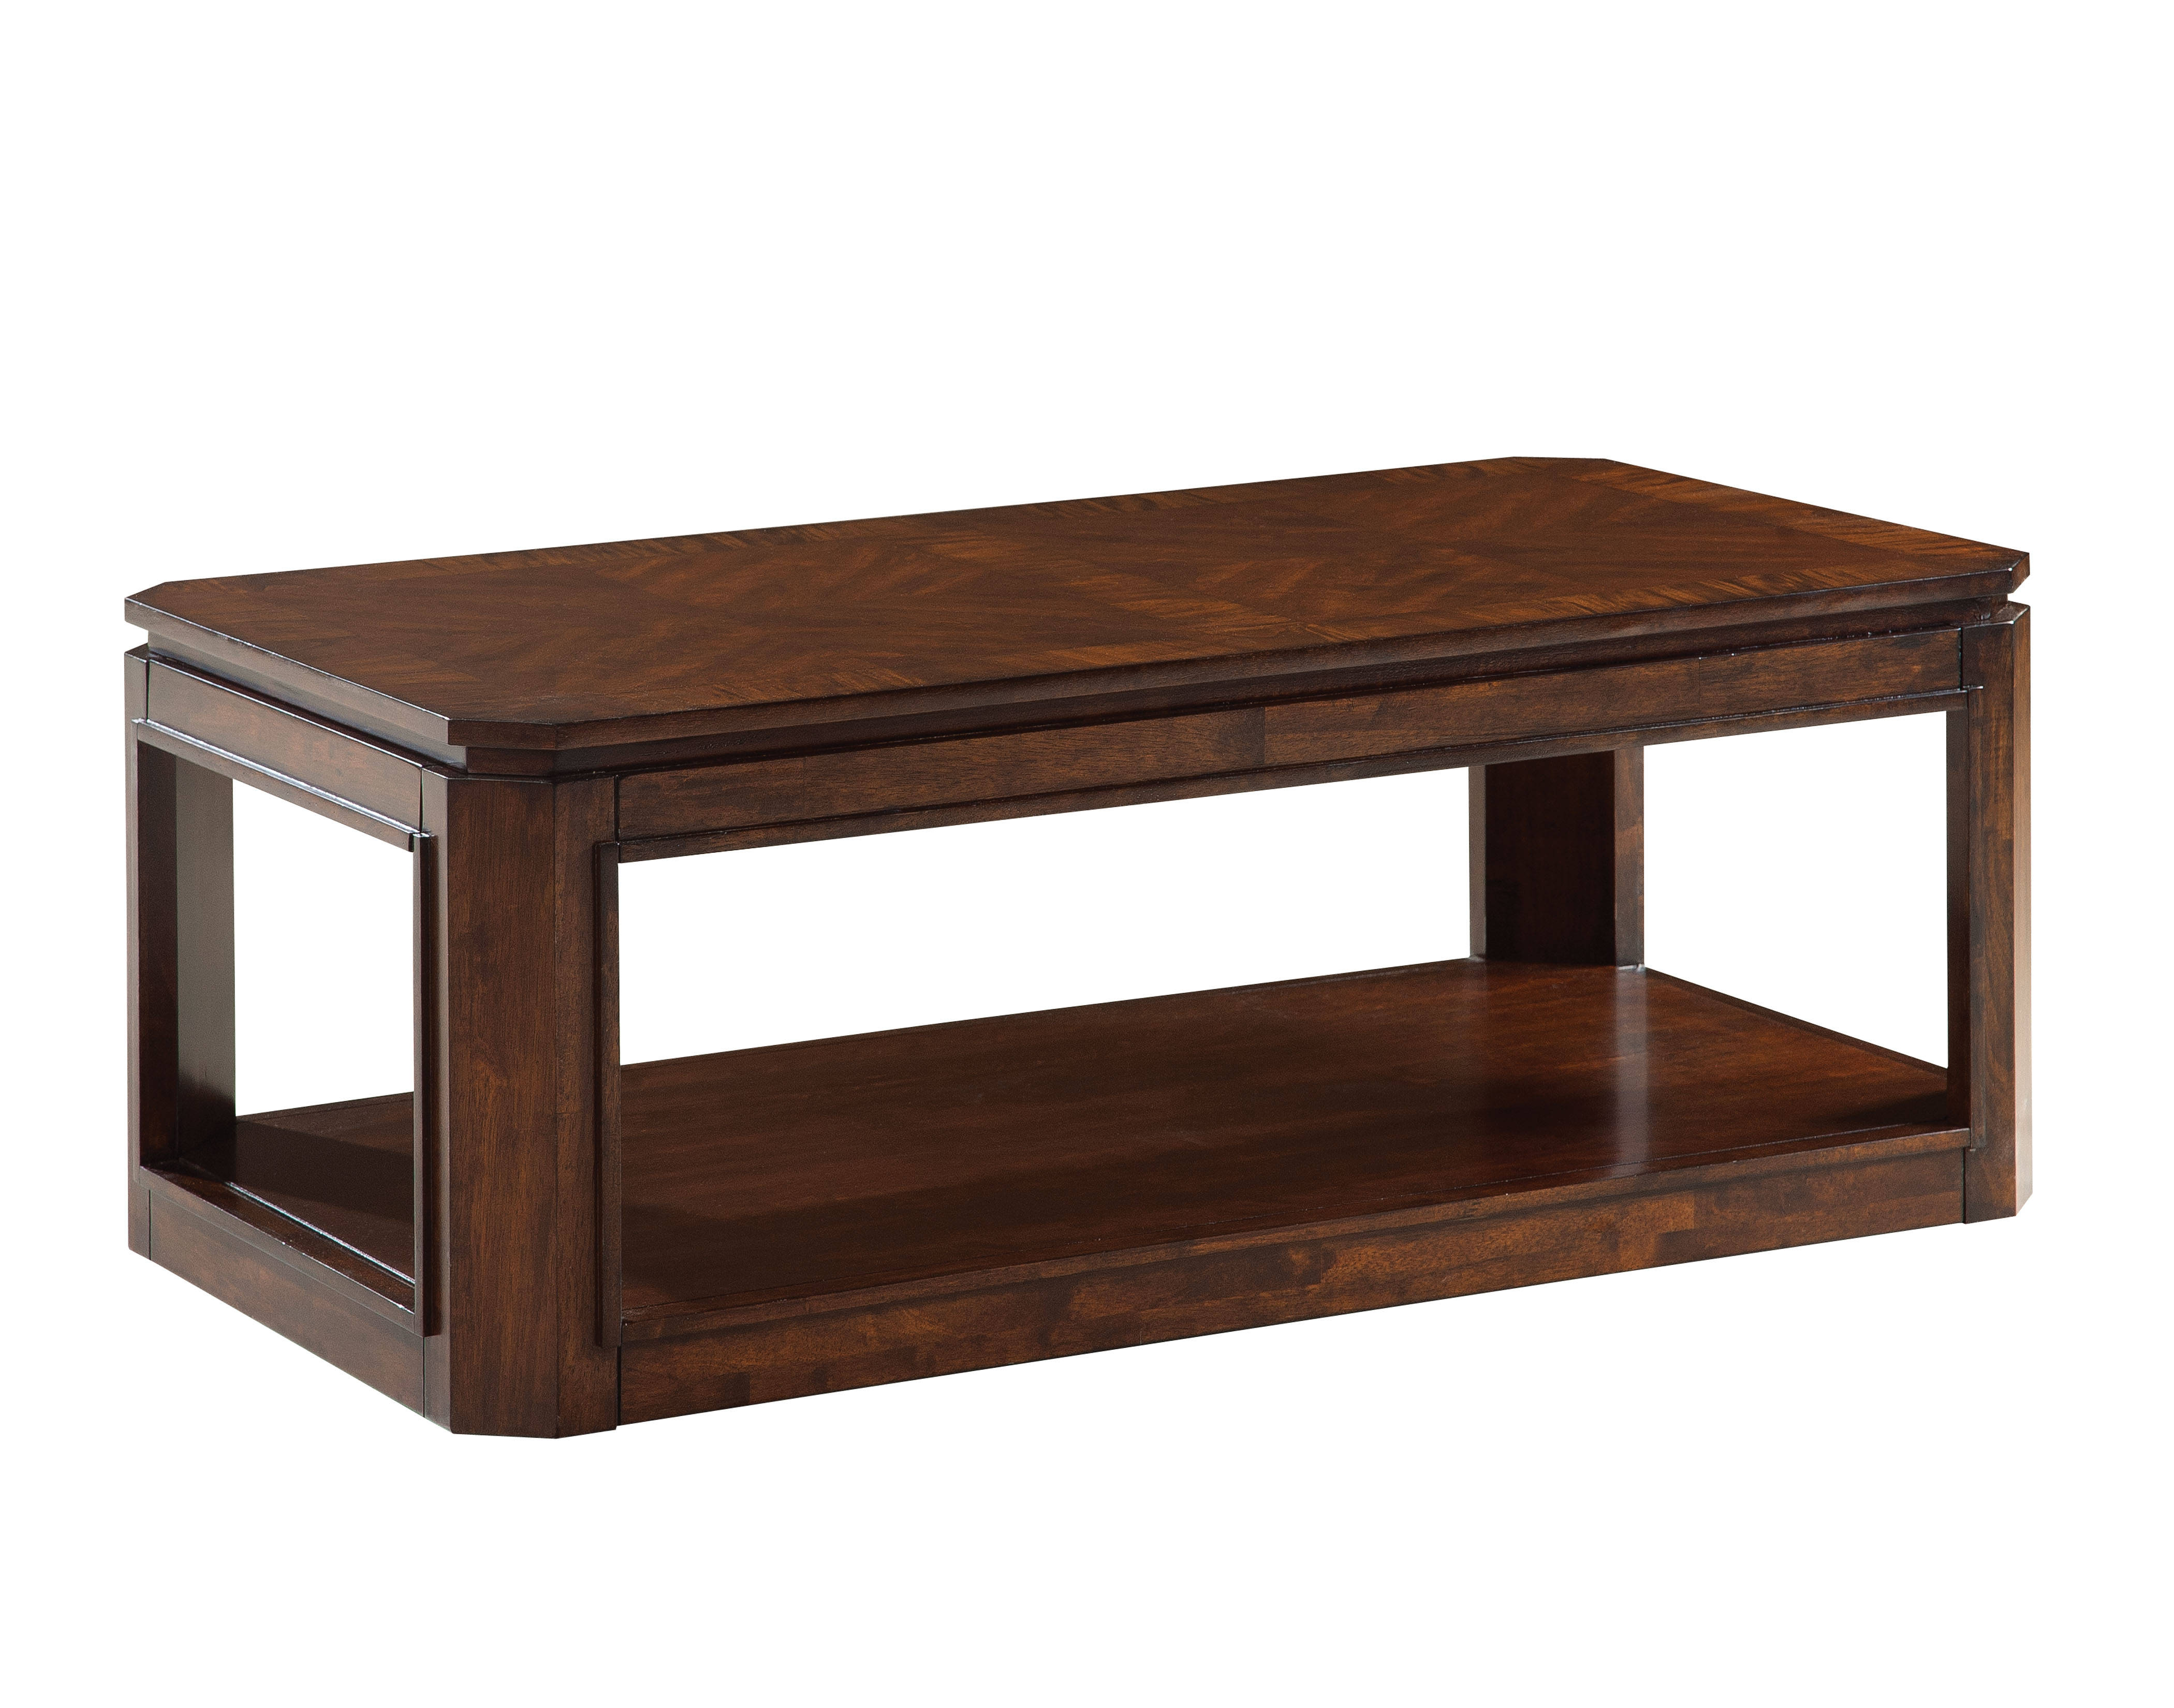 Avion Transitional Cherry Walnut Solid Rubberwood Cocktail Table The Classy Home